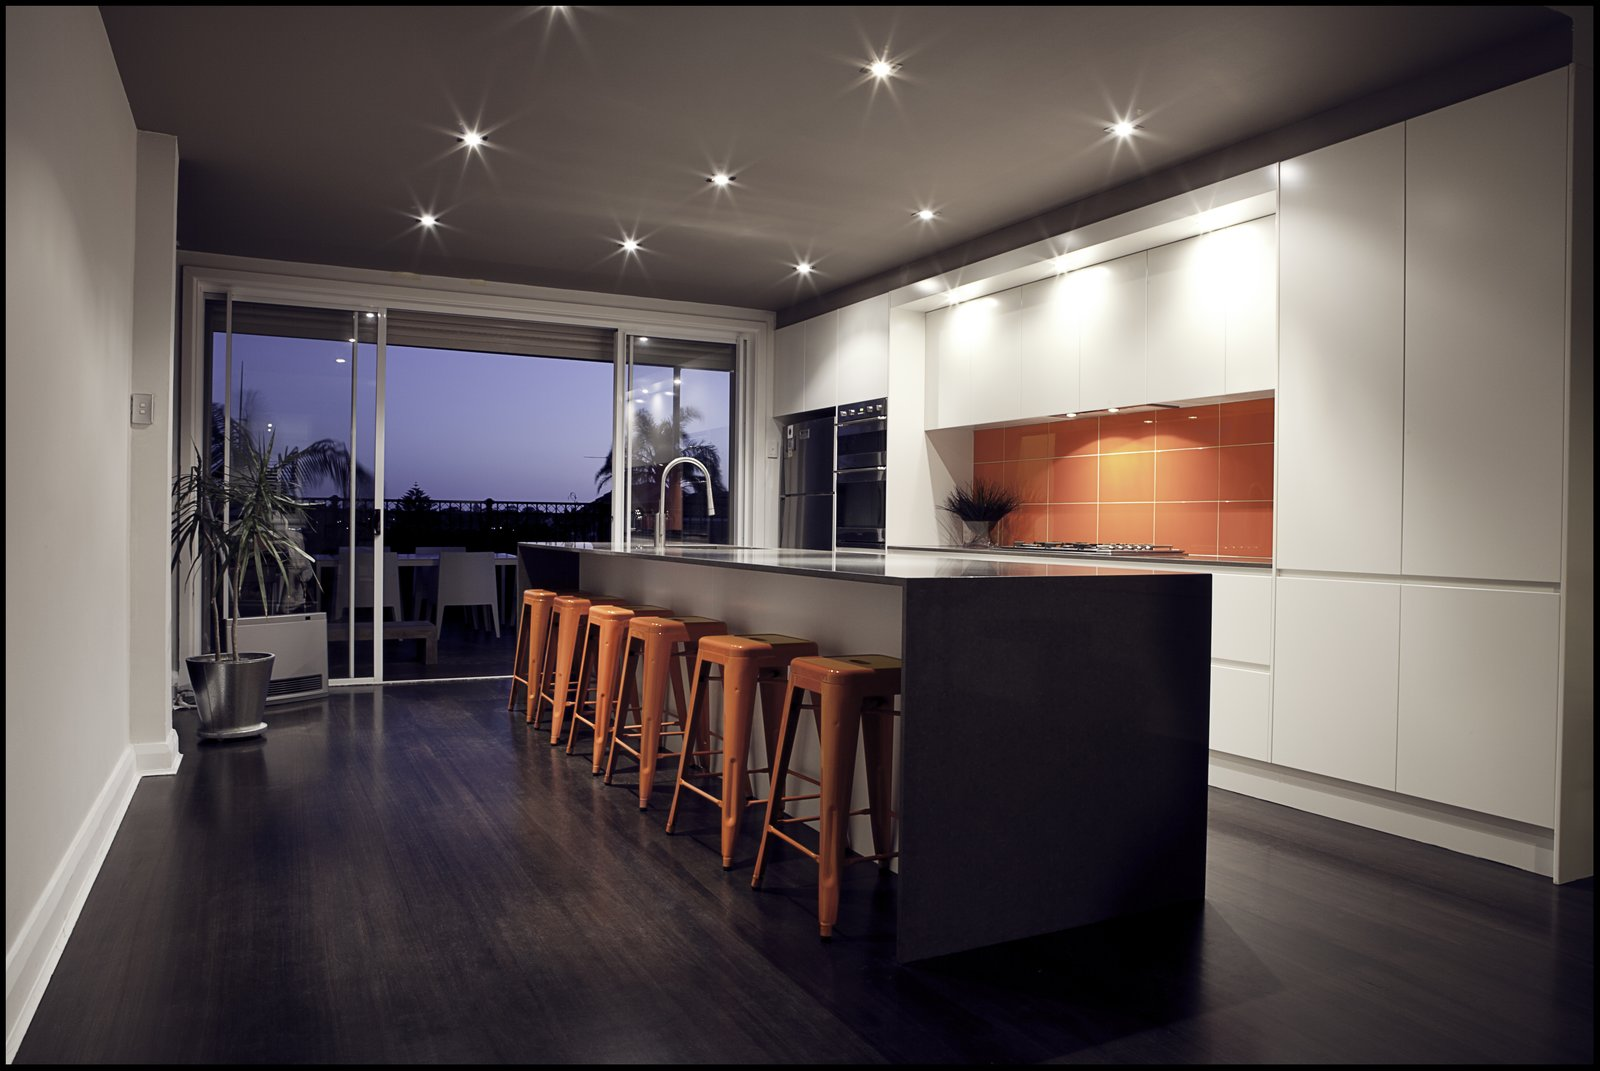 Kitchen, Wall Oven, Dark Hardwood Floor, White Cabinet, Refrigerator, and Recessed Lighting An eye-catching, red-tiled backsplash enlivens this kitchen.    Photo 5 of 11 in 10 Design Tips for Kitchens, According to Expert Renovators